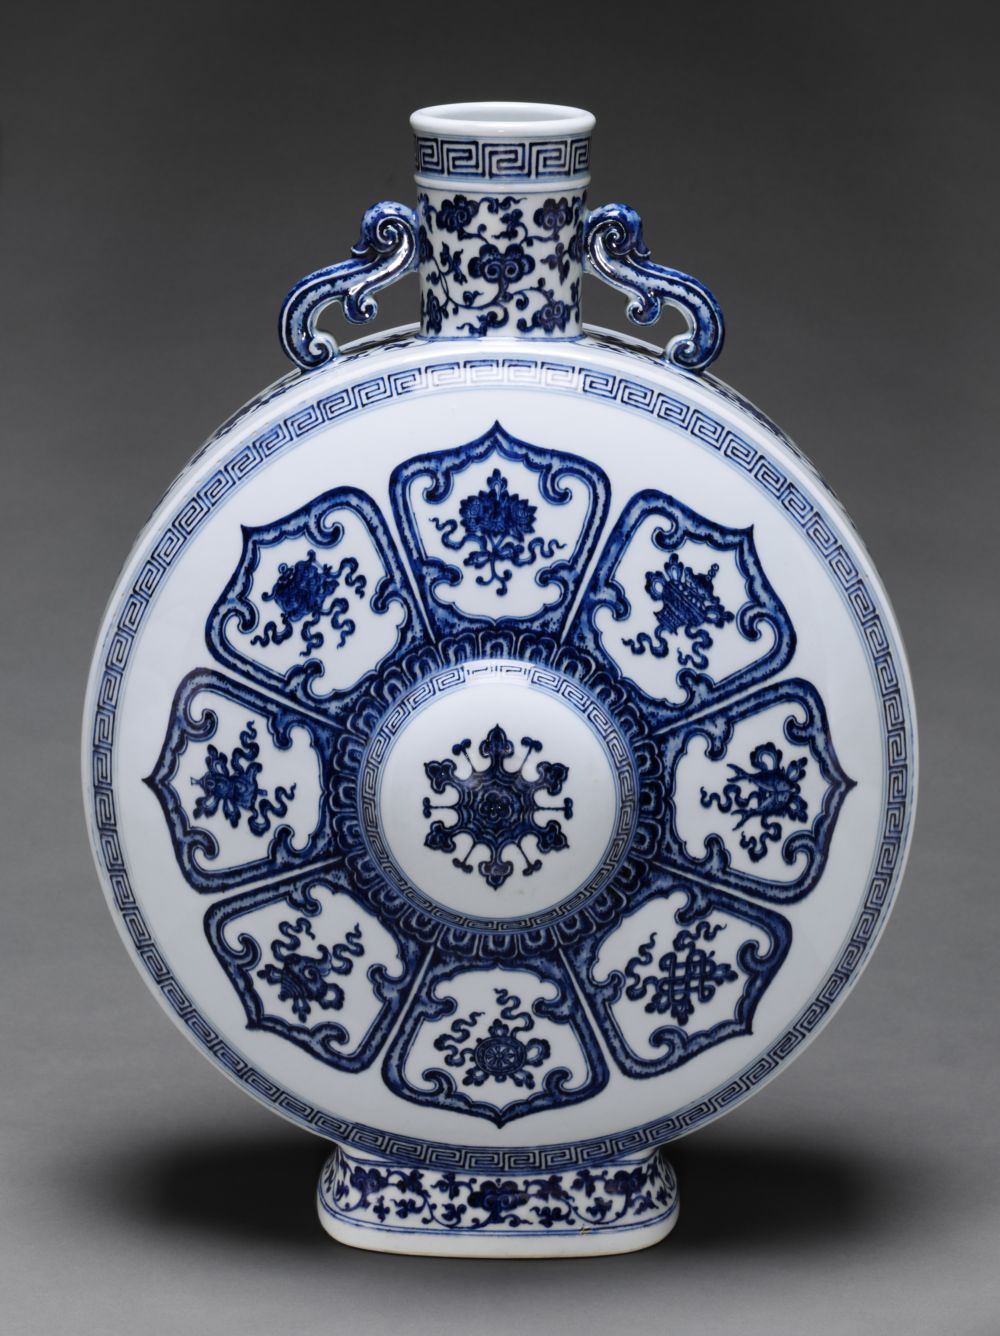 Moon Flask with Decoration of the Eight Buddhist Treasures (Babao) within Stylized Lotus Petals